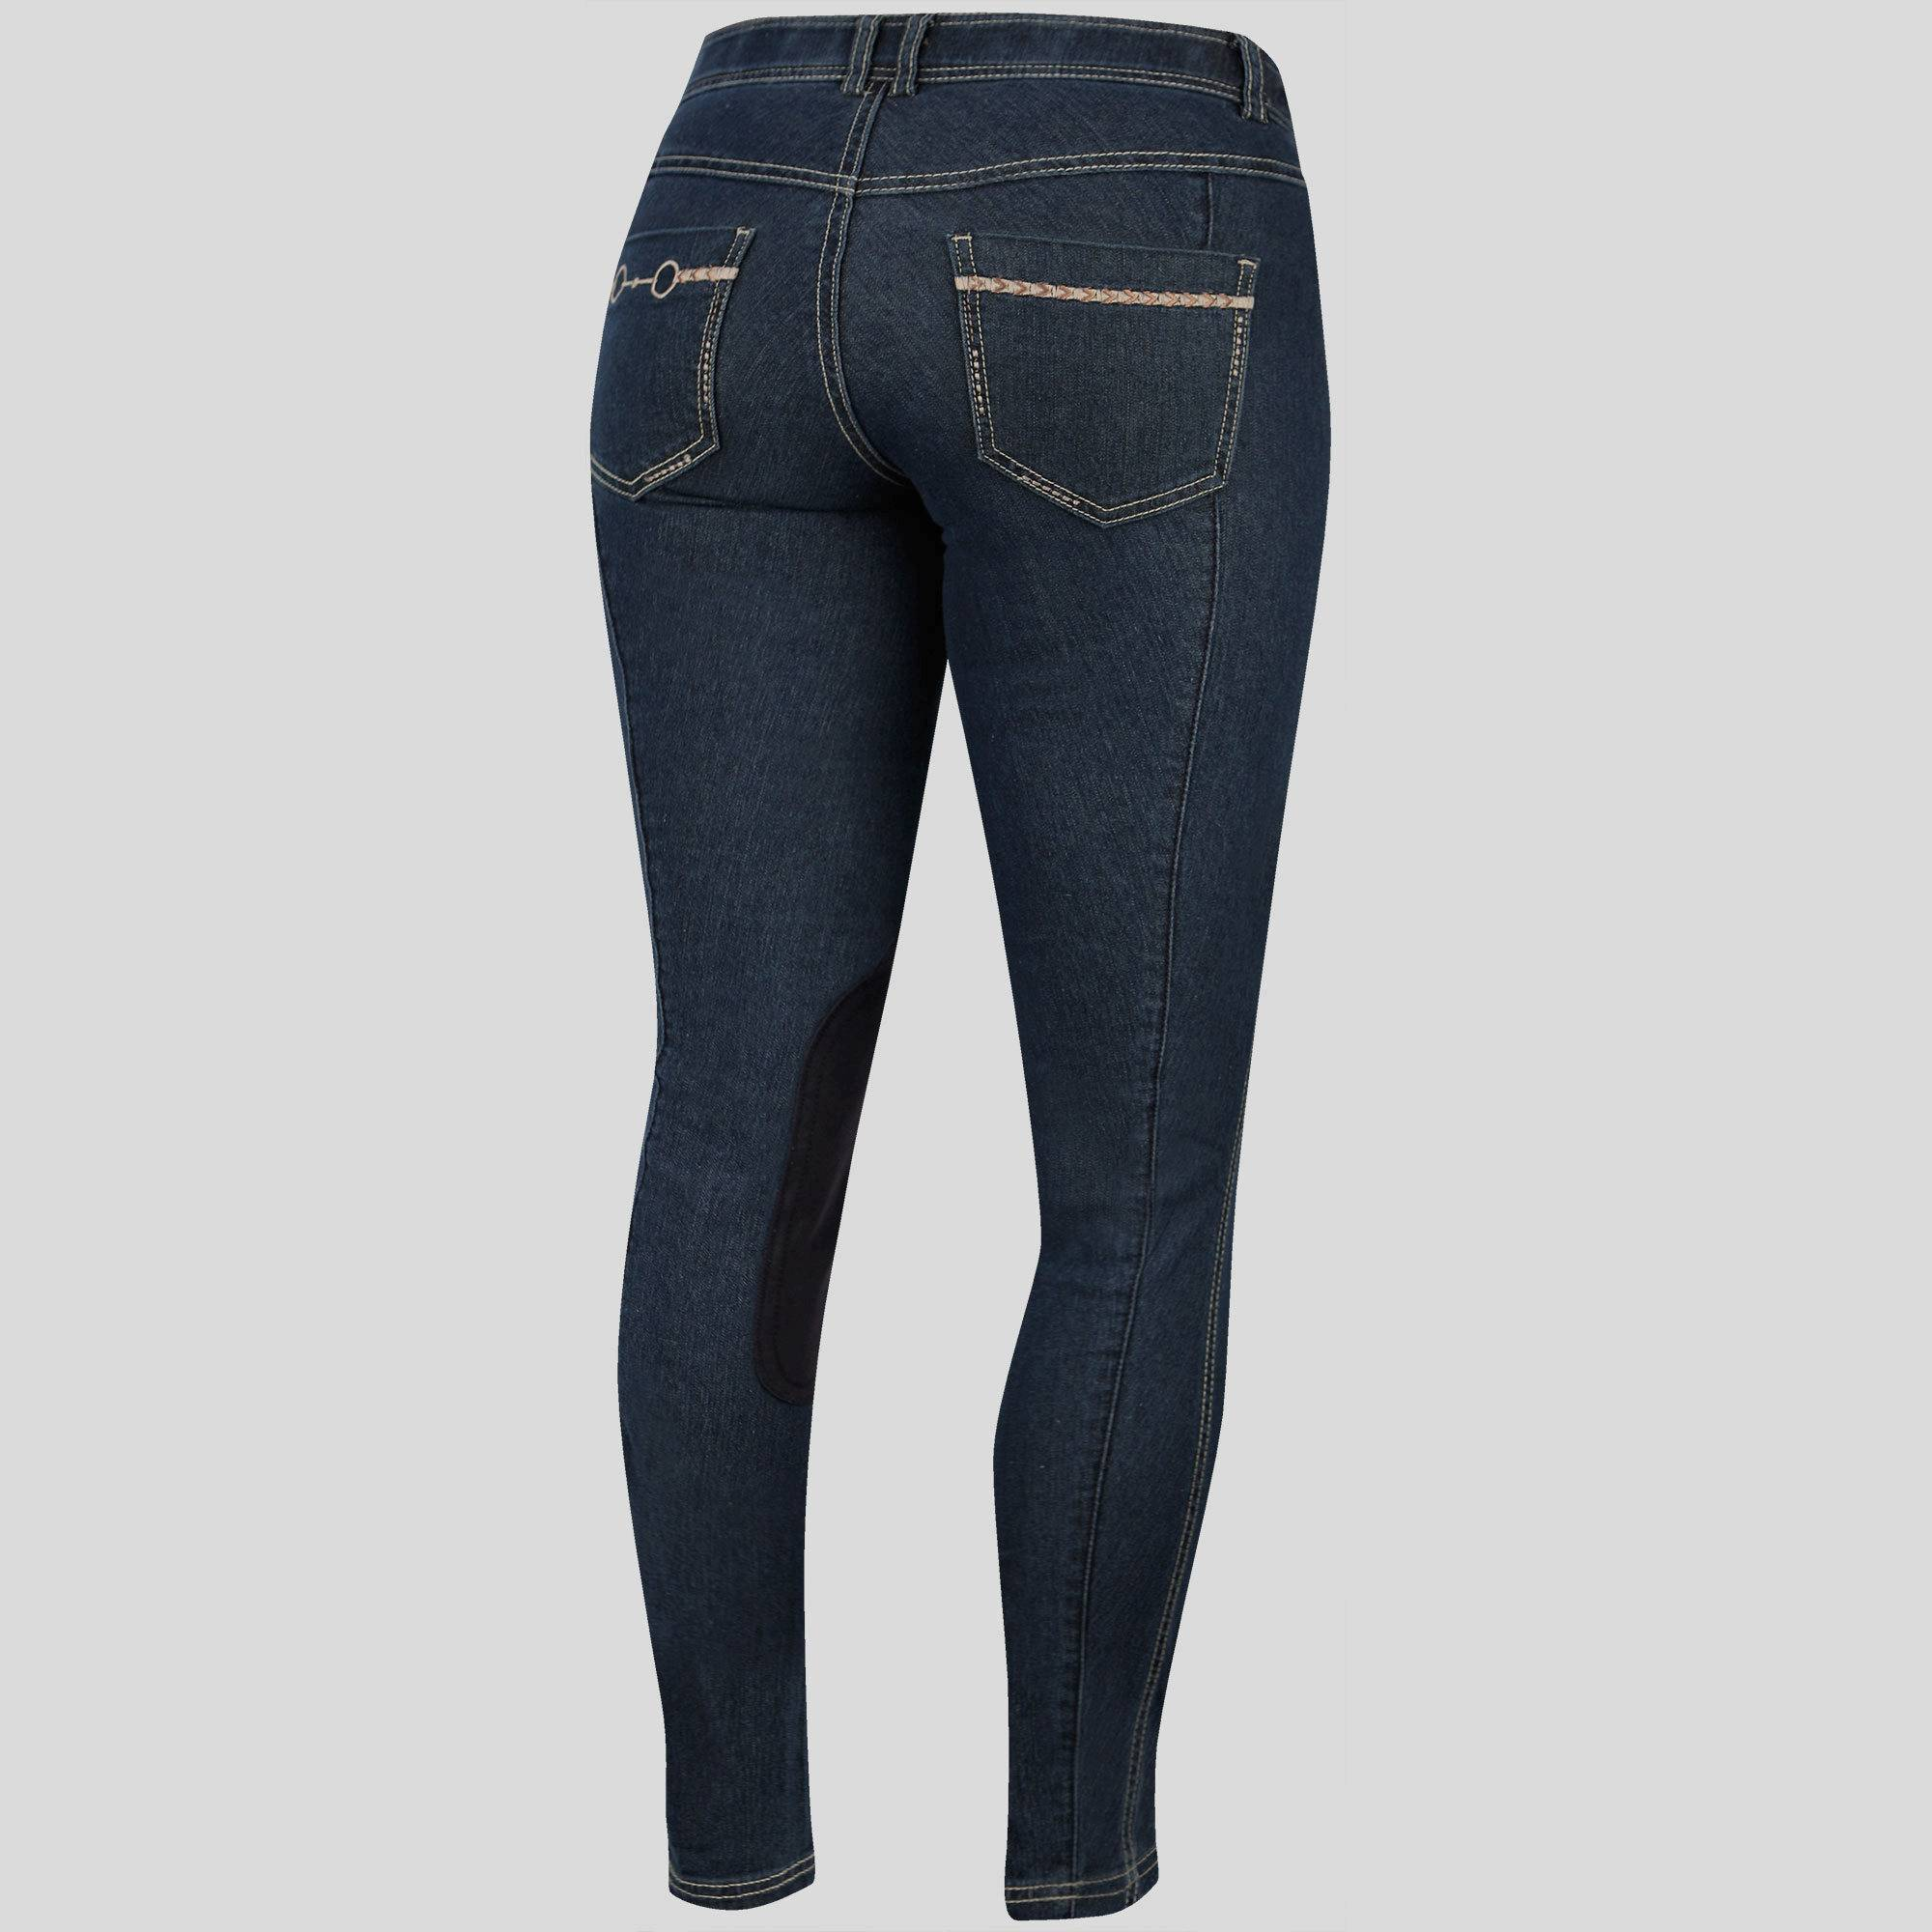 Irideon Women's Stretch Denim Bit & Reins Breech